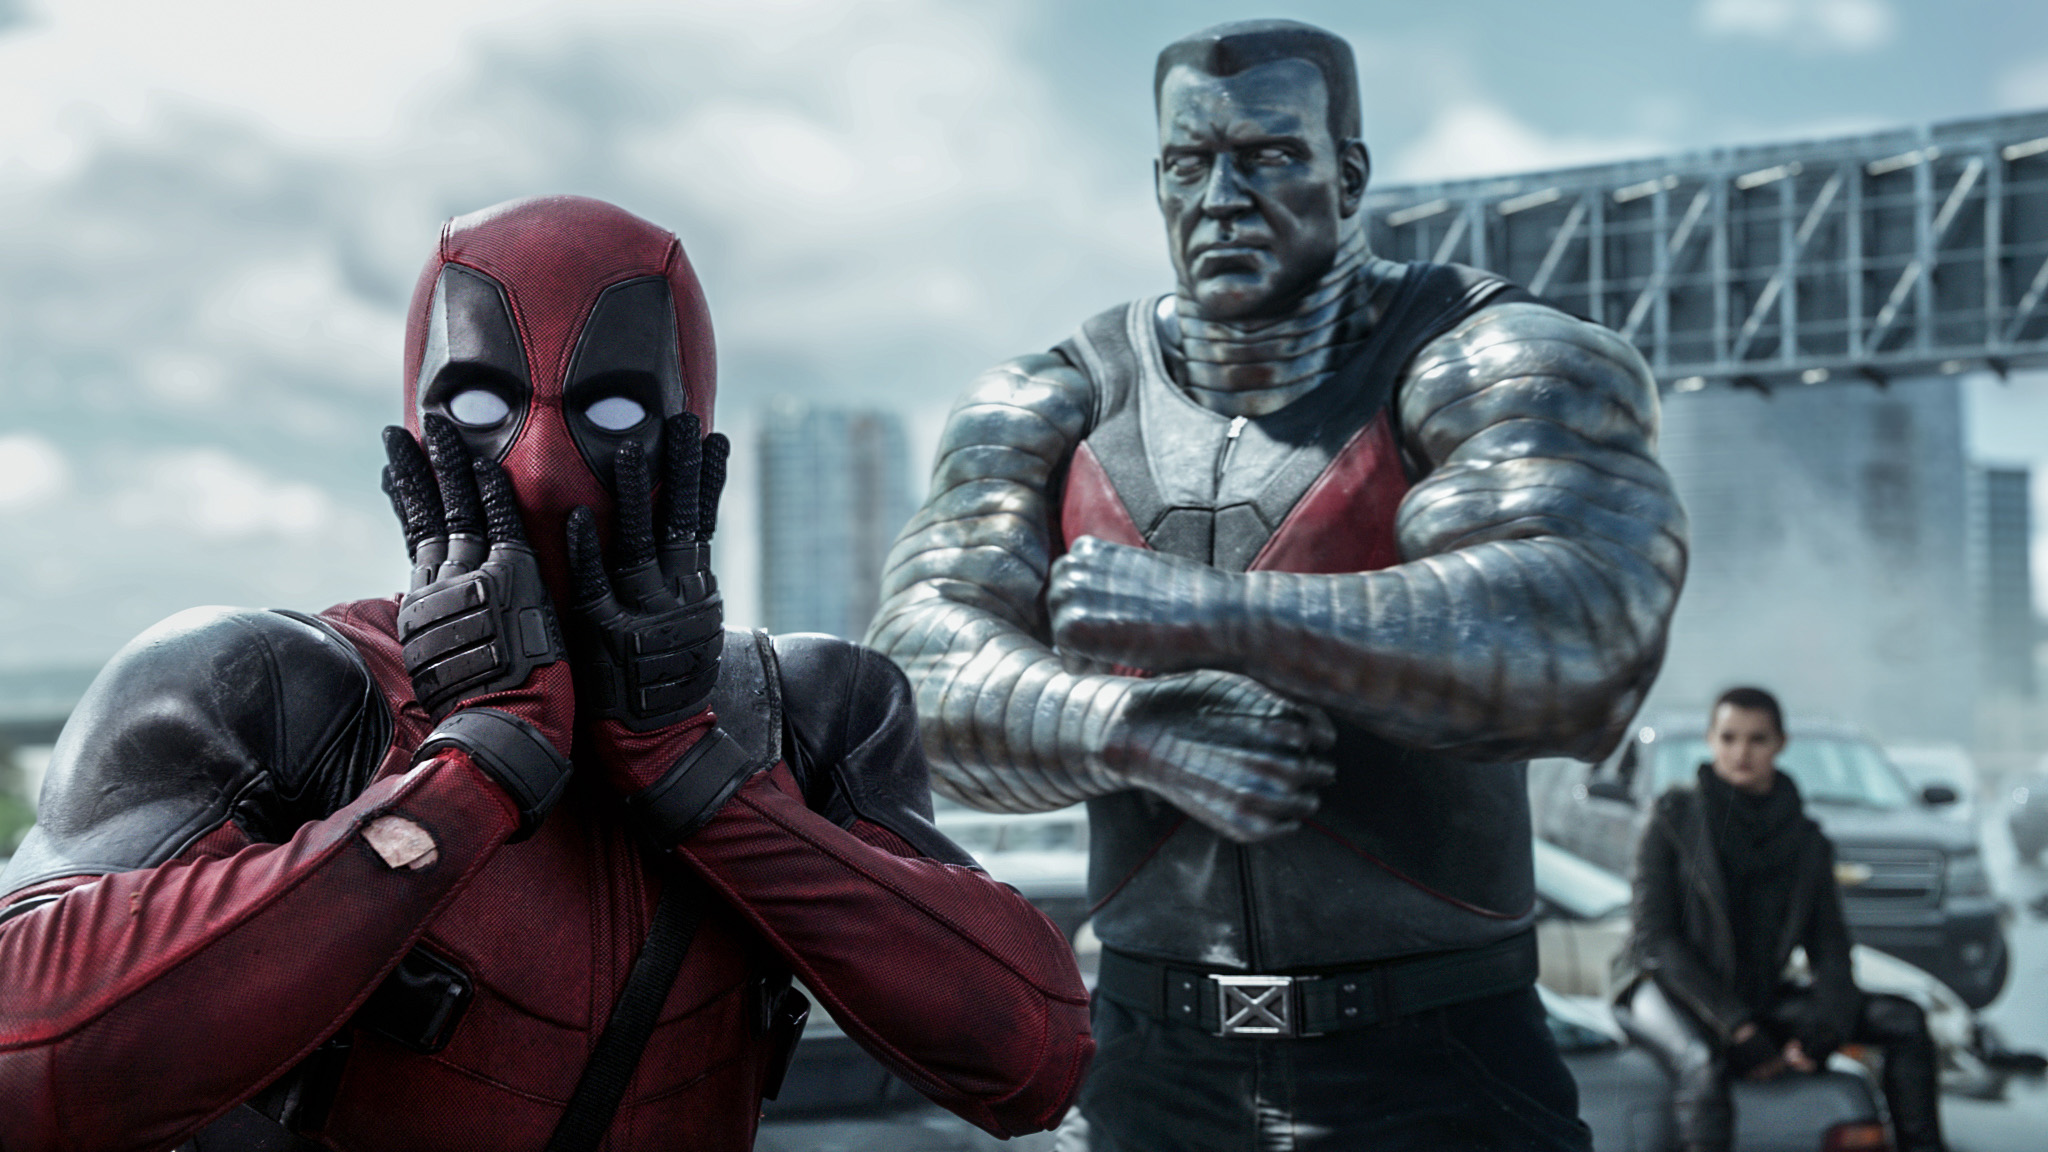 deadpool colossus Who Won? Ranking the Comic Book Movies of 2016